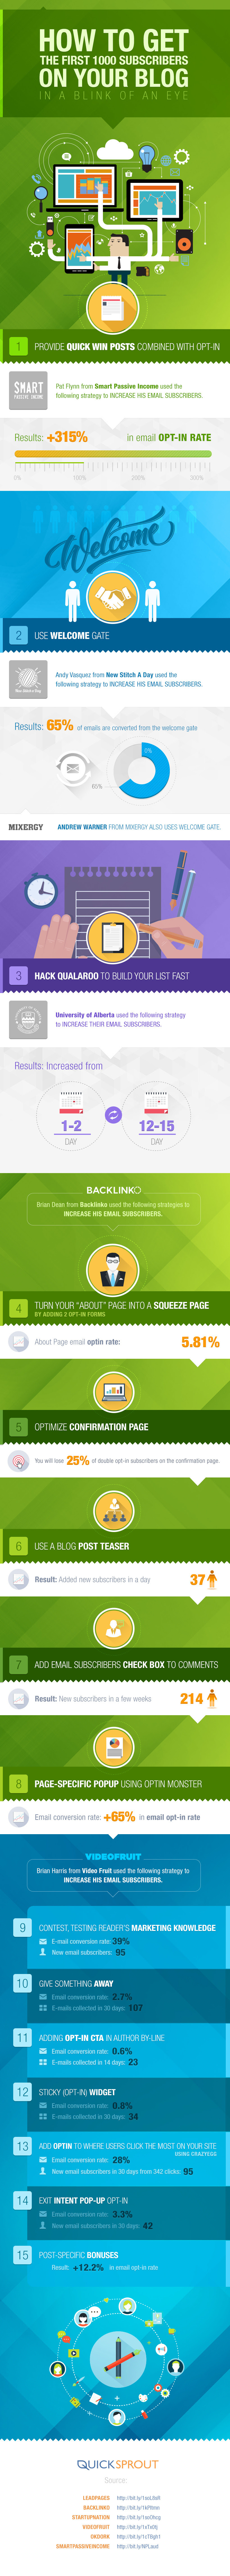 15 Strategies to Get Your First 1,000 Blog Readers - #infographic